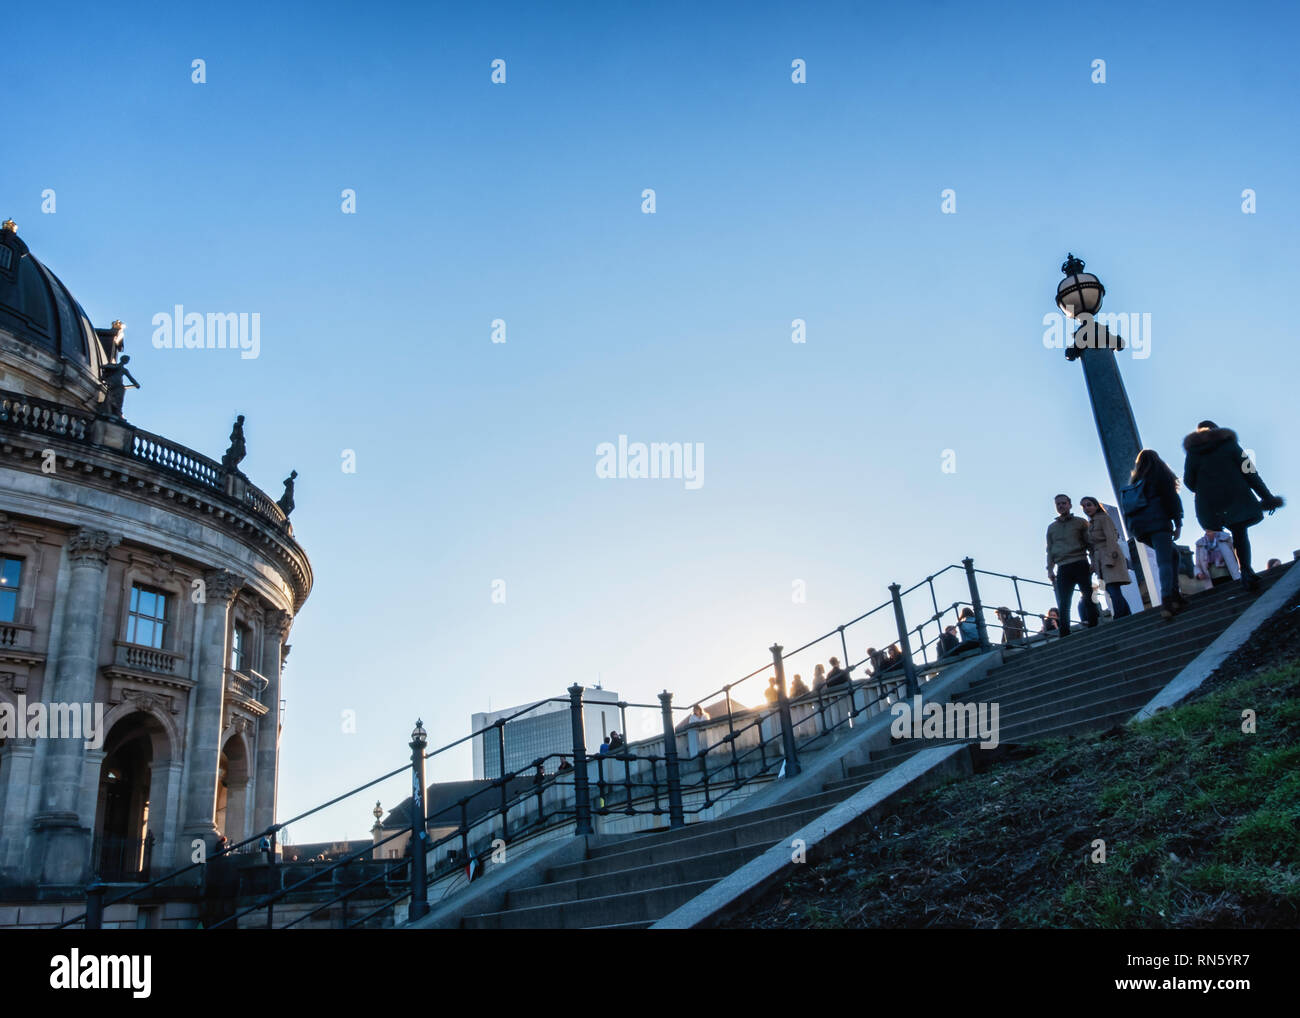 Berlin, Germany, 16th February 2019. Berliners are enjoying a glorious Spring-like weekend in the middle of February - normally the second coldest month of the year. The parks were crowded with people  enjoying the blue skies, sunshine and unseasonal warmer weather. Credit: Eden Breitz/Alamy Live News - Stock Image